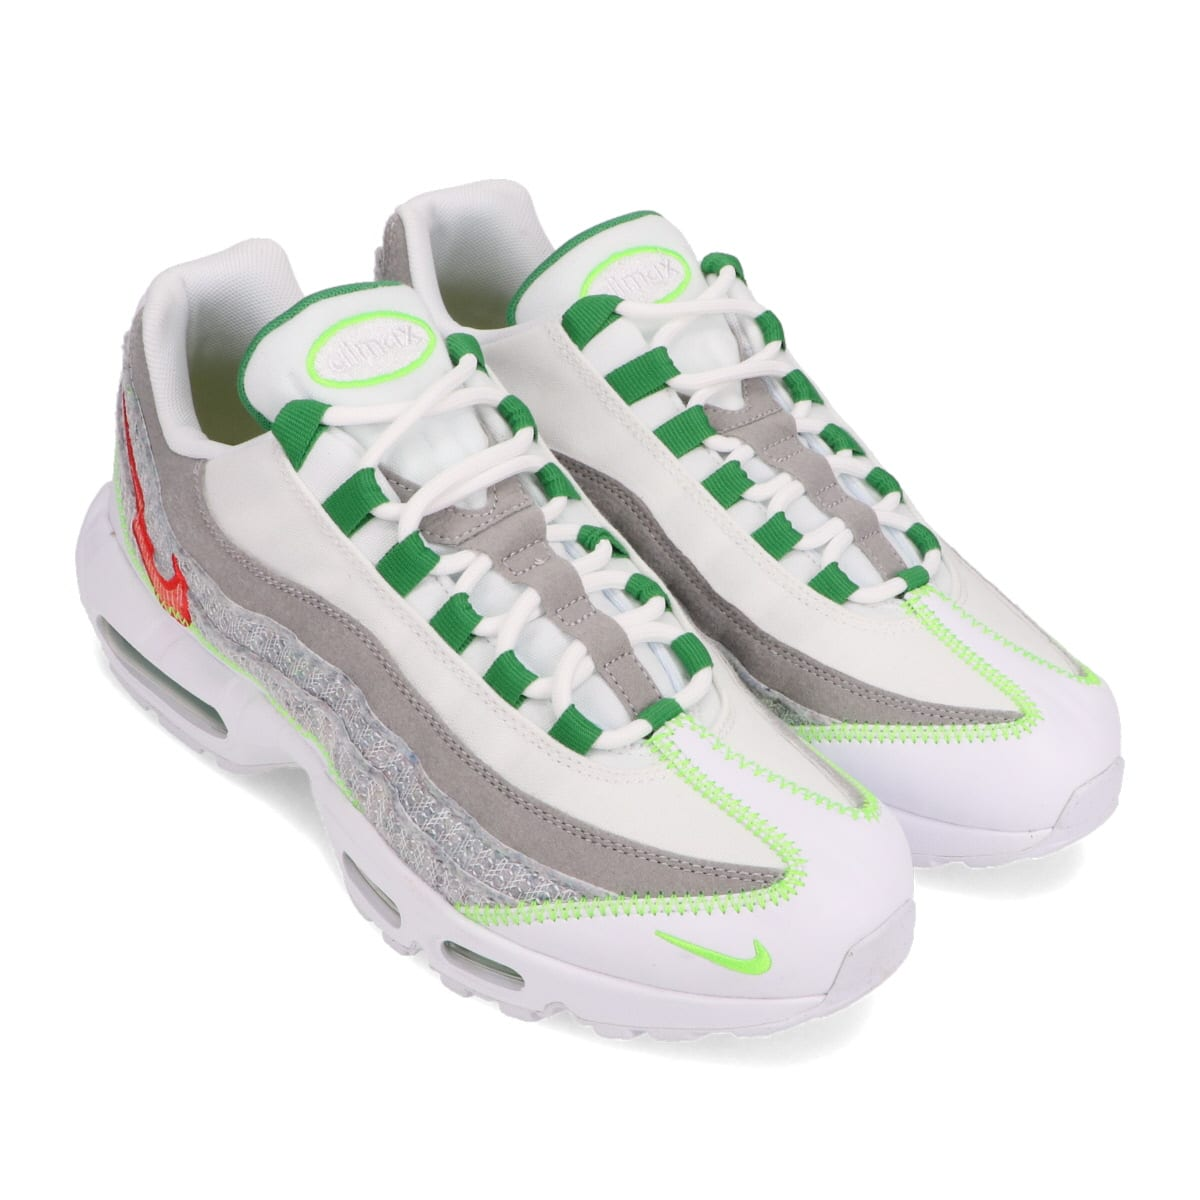 NIKE AIR MAX 95 WHITE/CLASSIC GREEN-ELECTRIC GREEN 20HO-I_photo_large